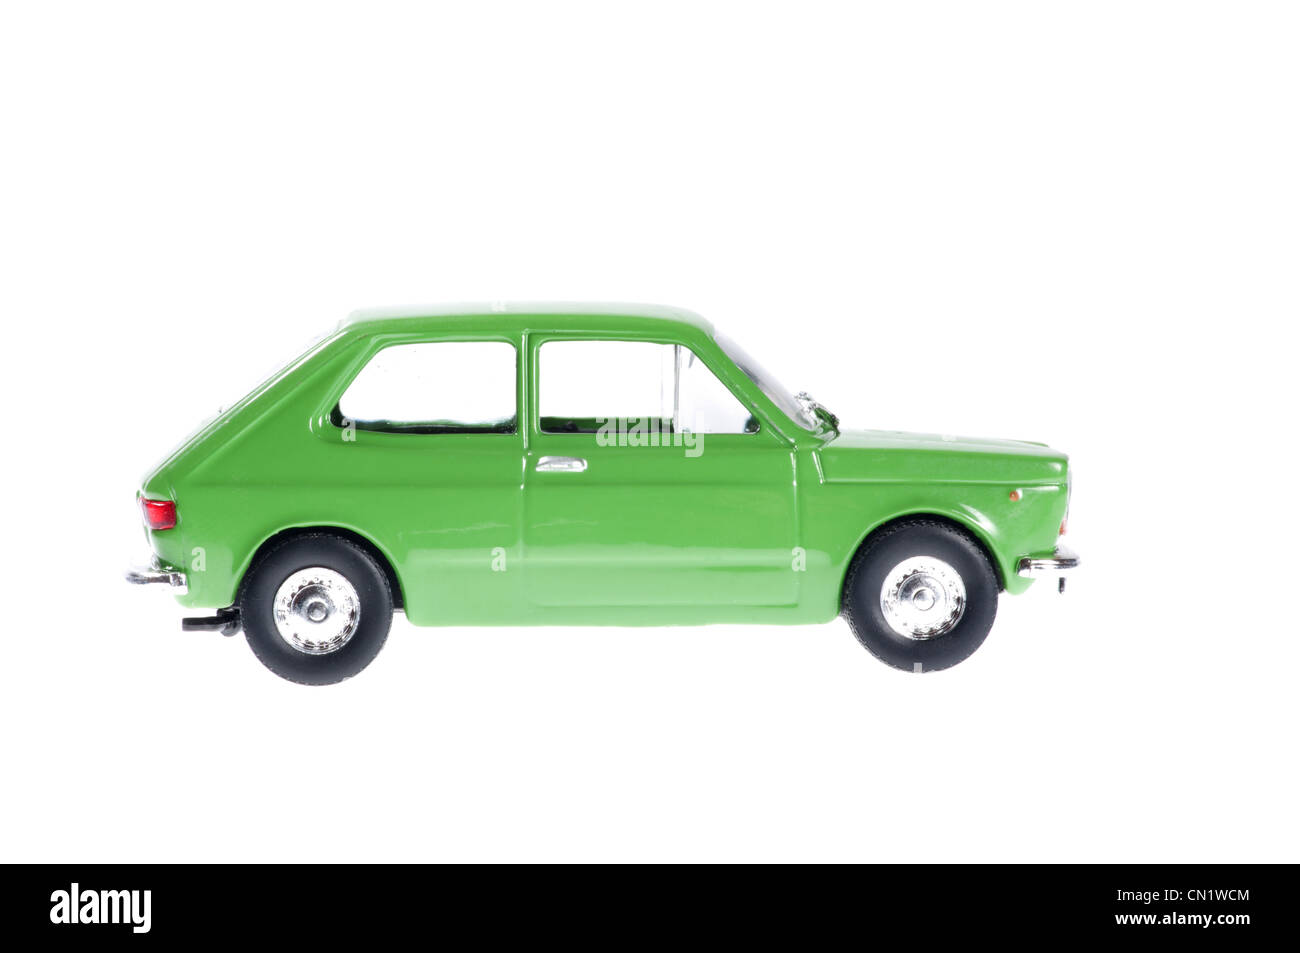 Fiat 127 p old small car Stock Photo: 47370420 - Alamy